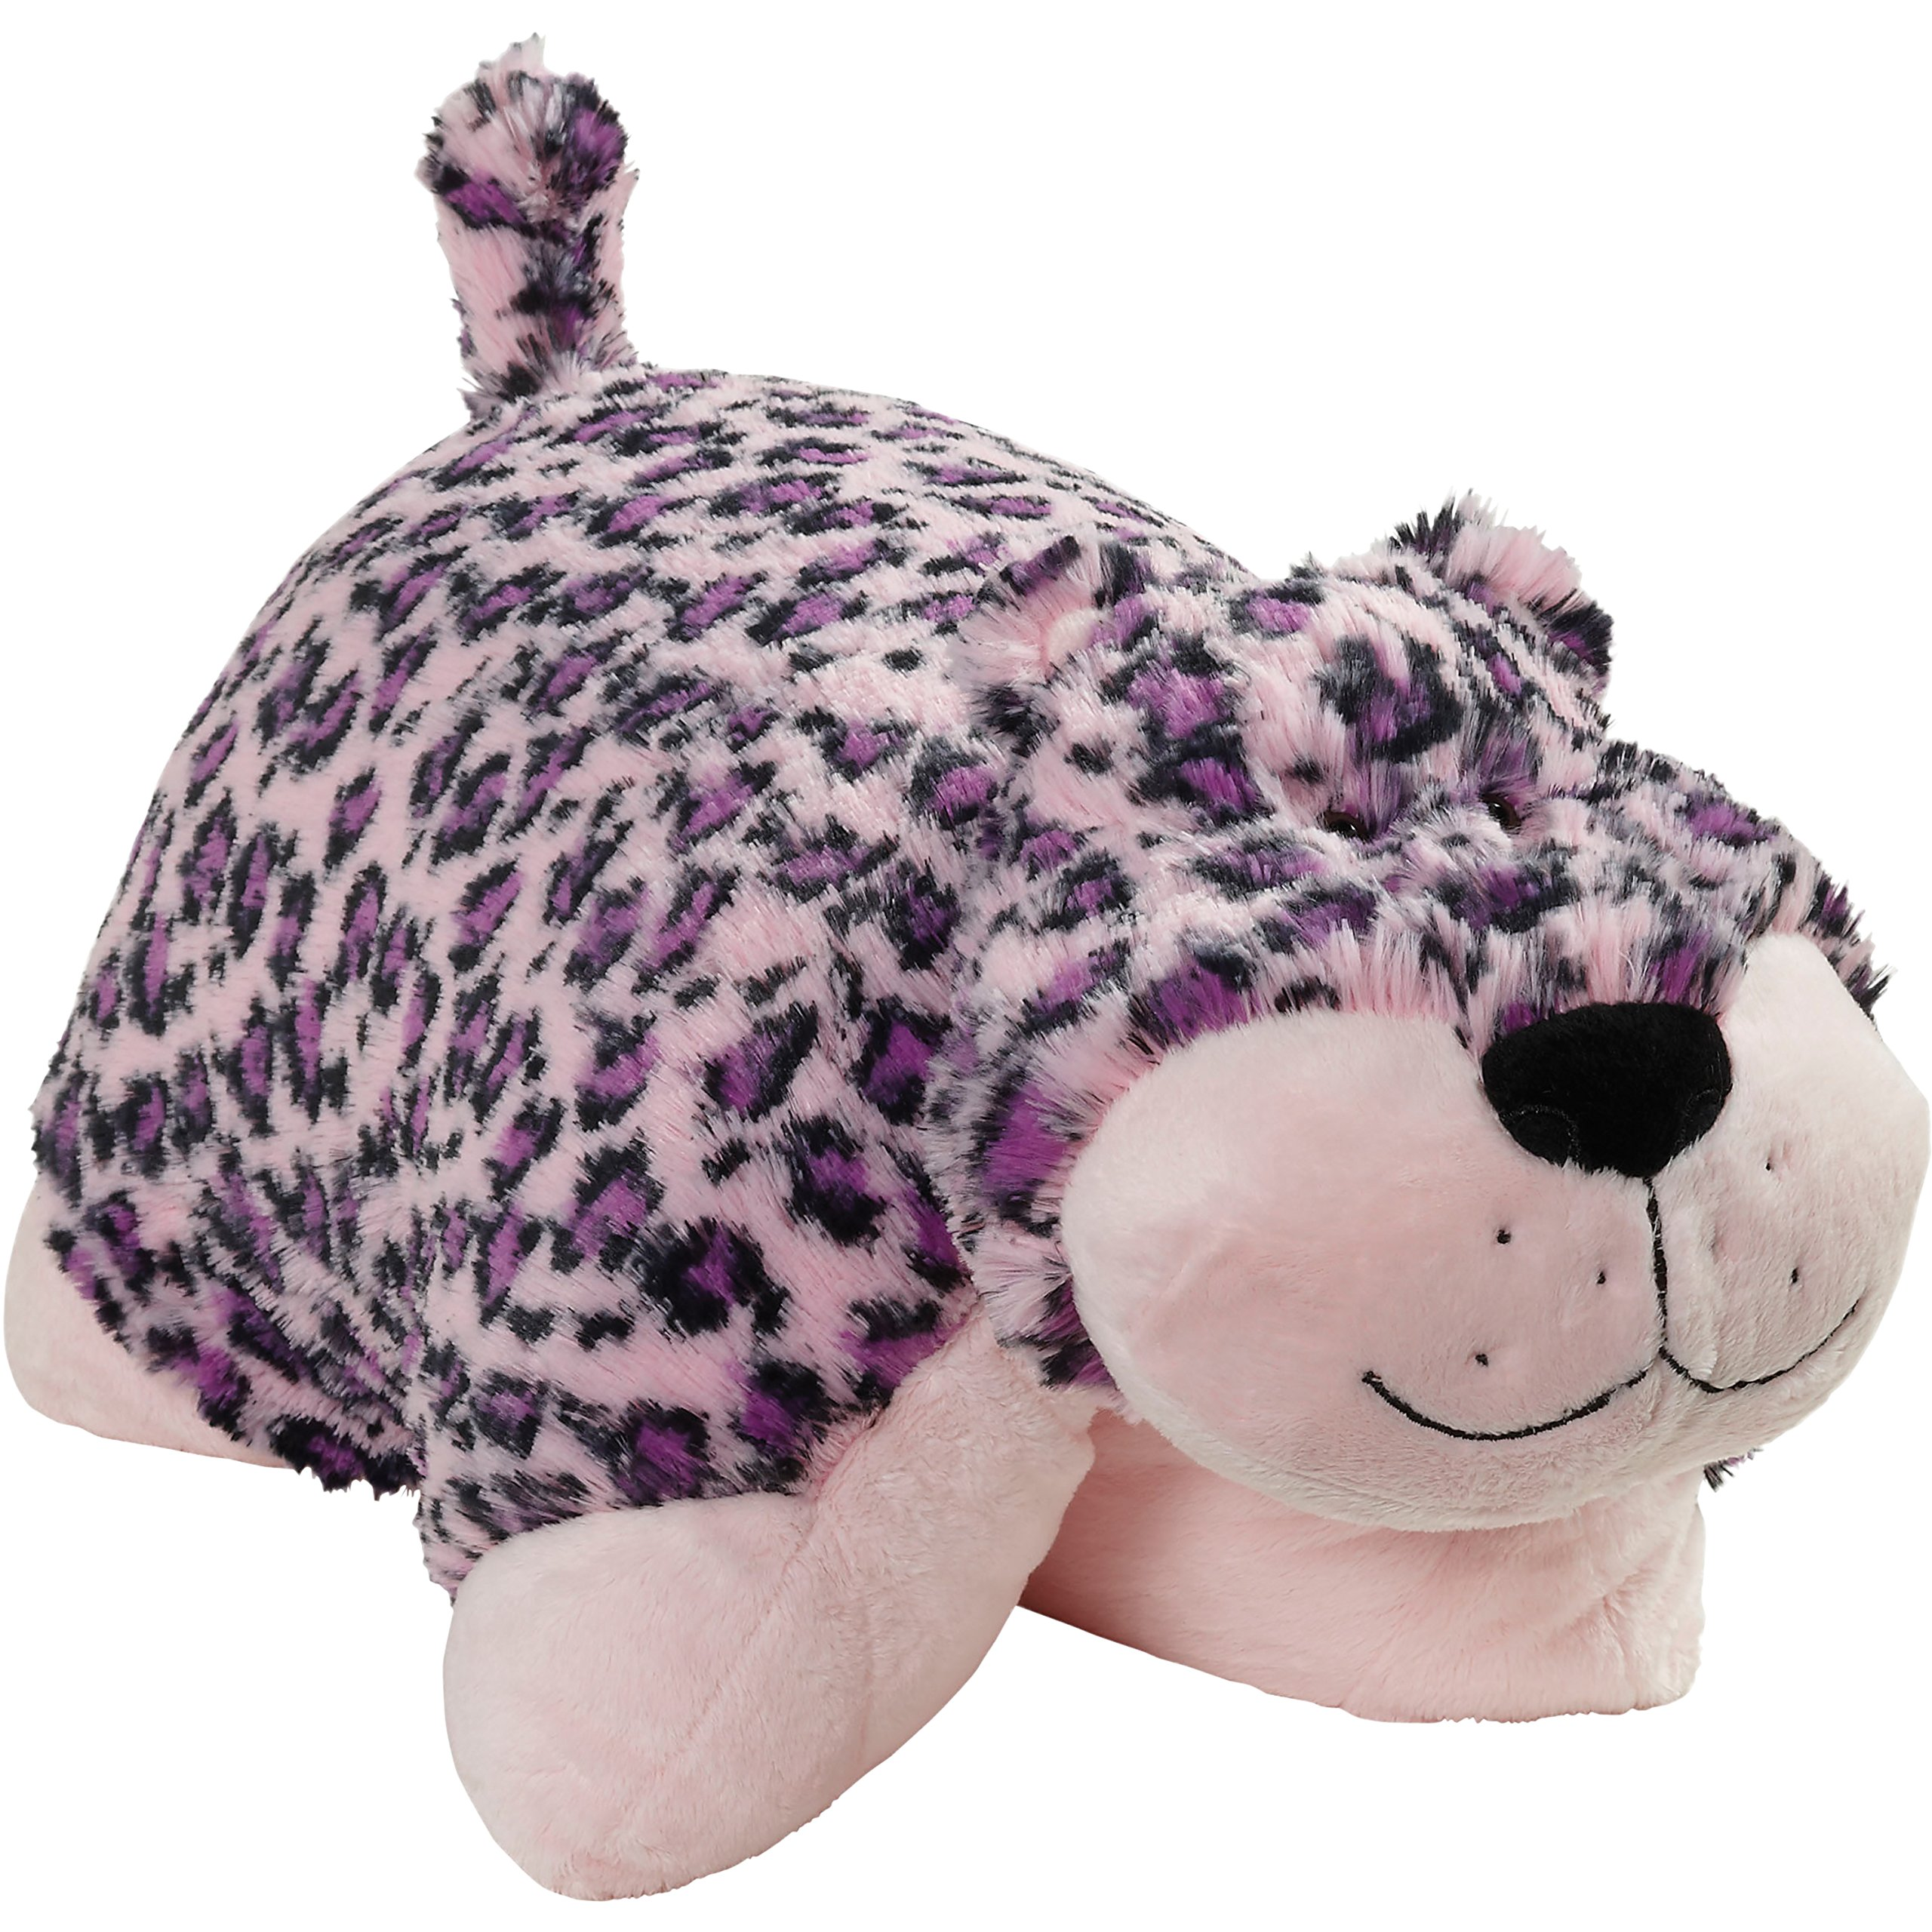 Pillow Pets Signature Stuffed Animal Plush Toy 18'', Lulu Leopard